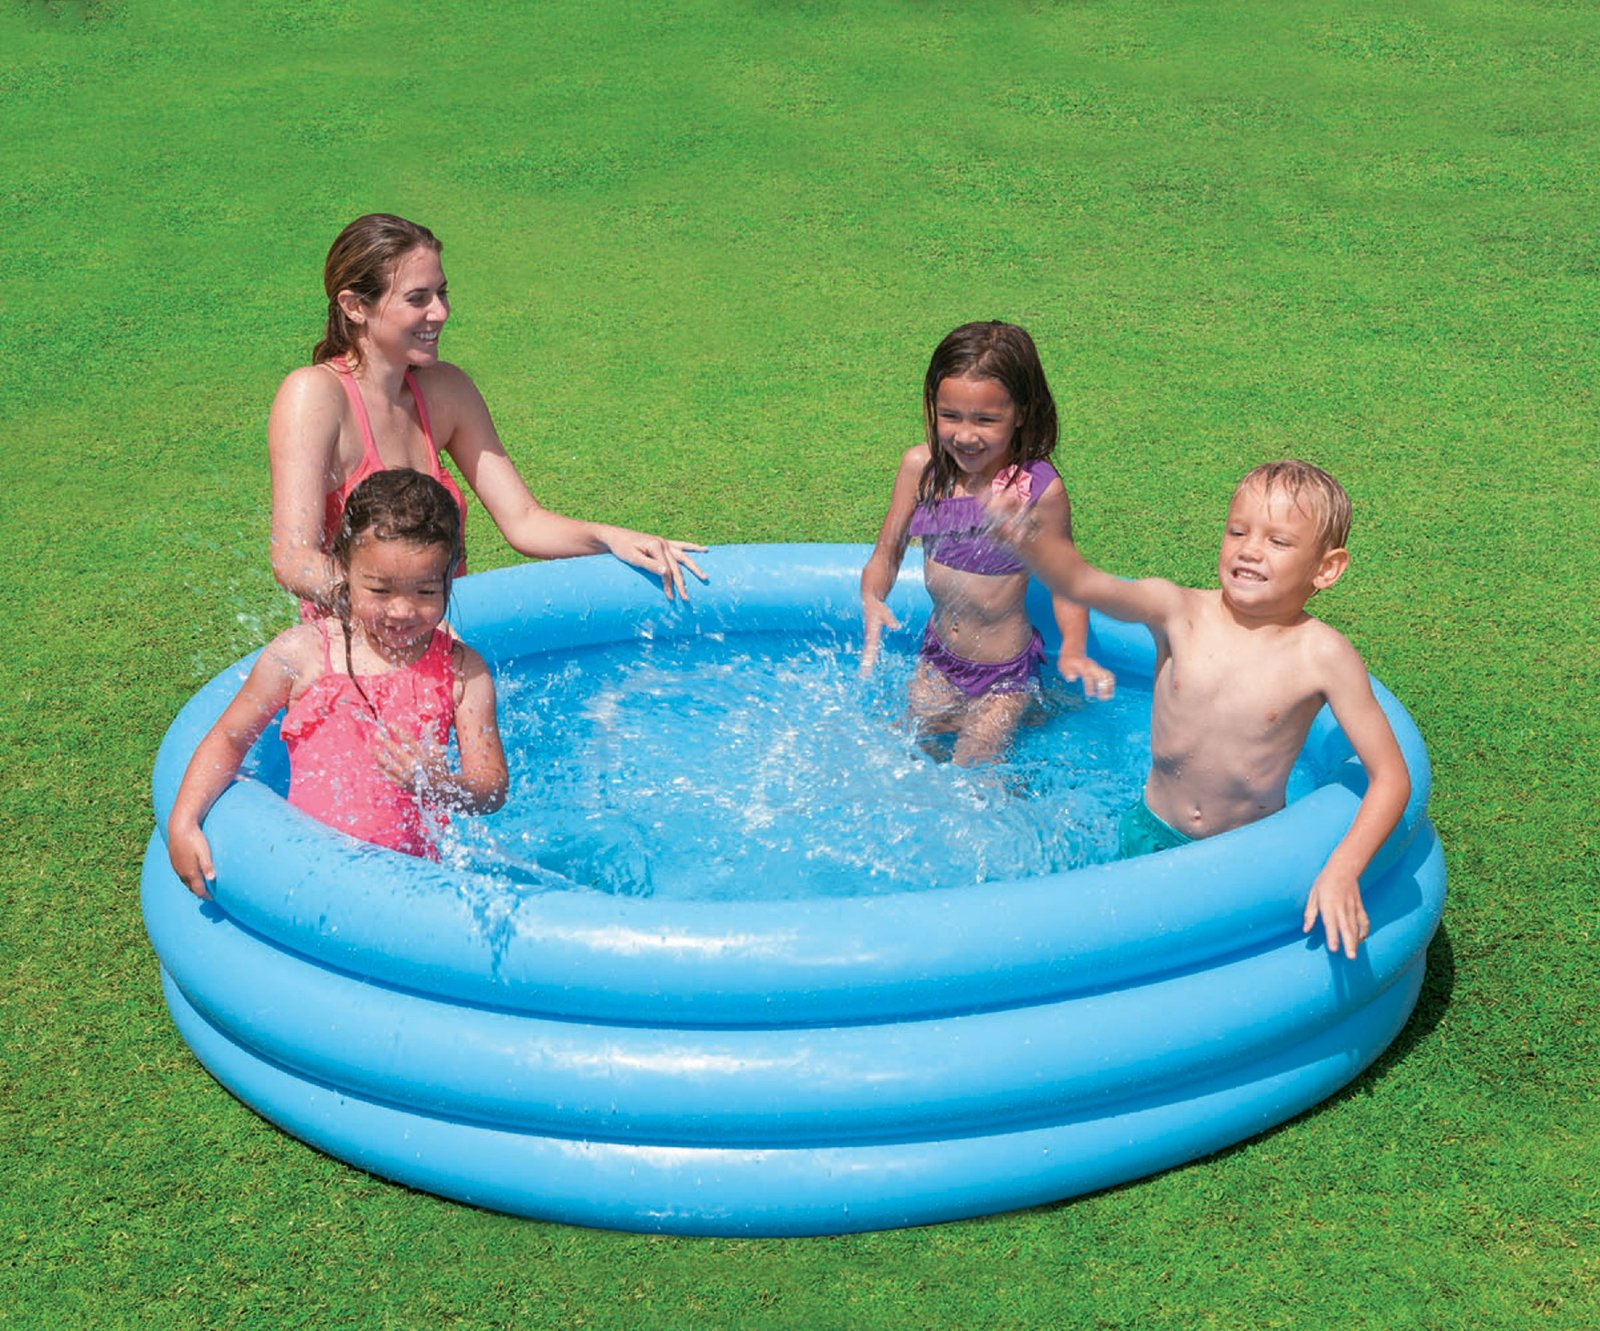 Intex 3 ring paddling pool crystal blue toy at mighty ape australia for Intex swimming pools australia